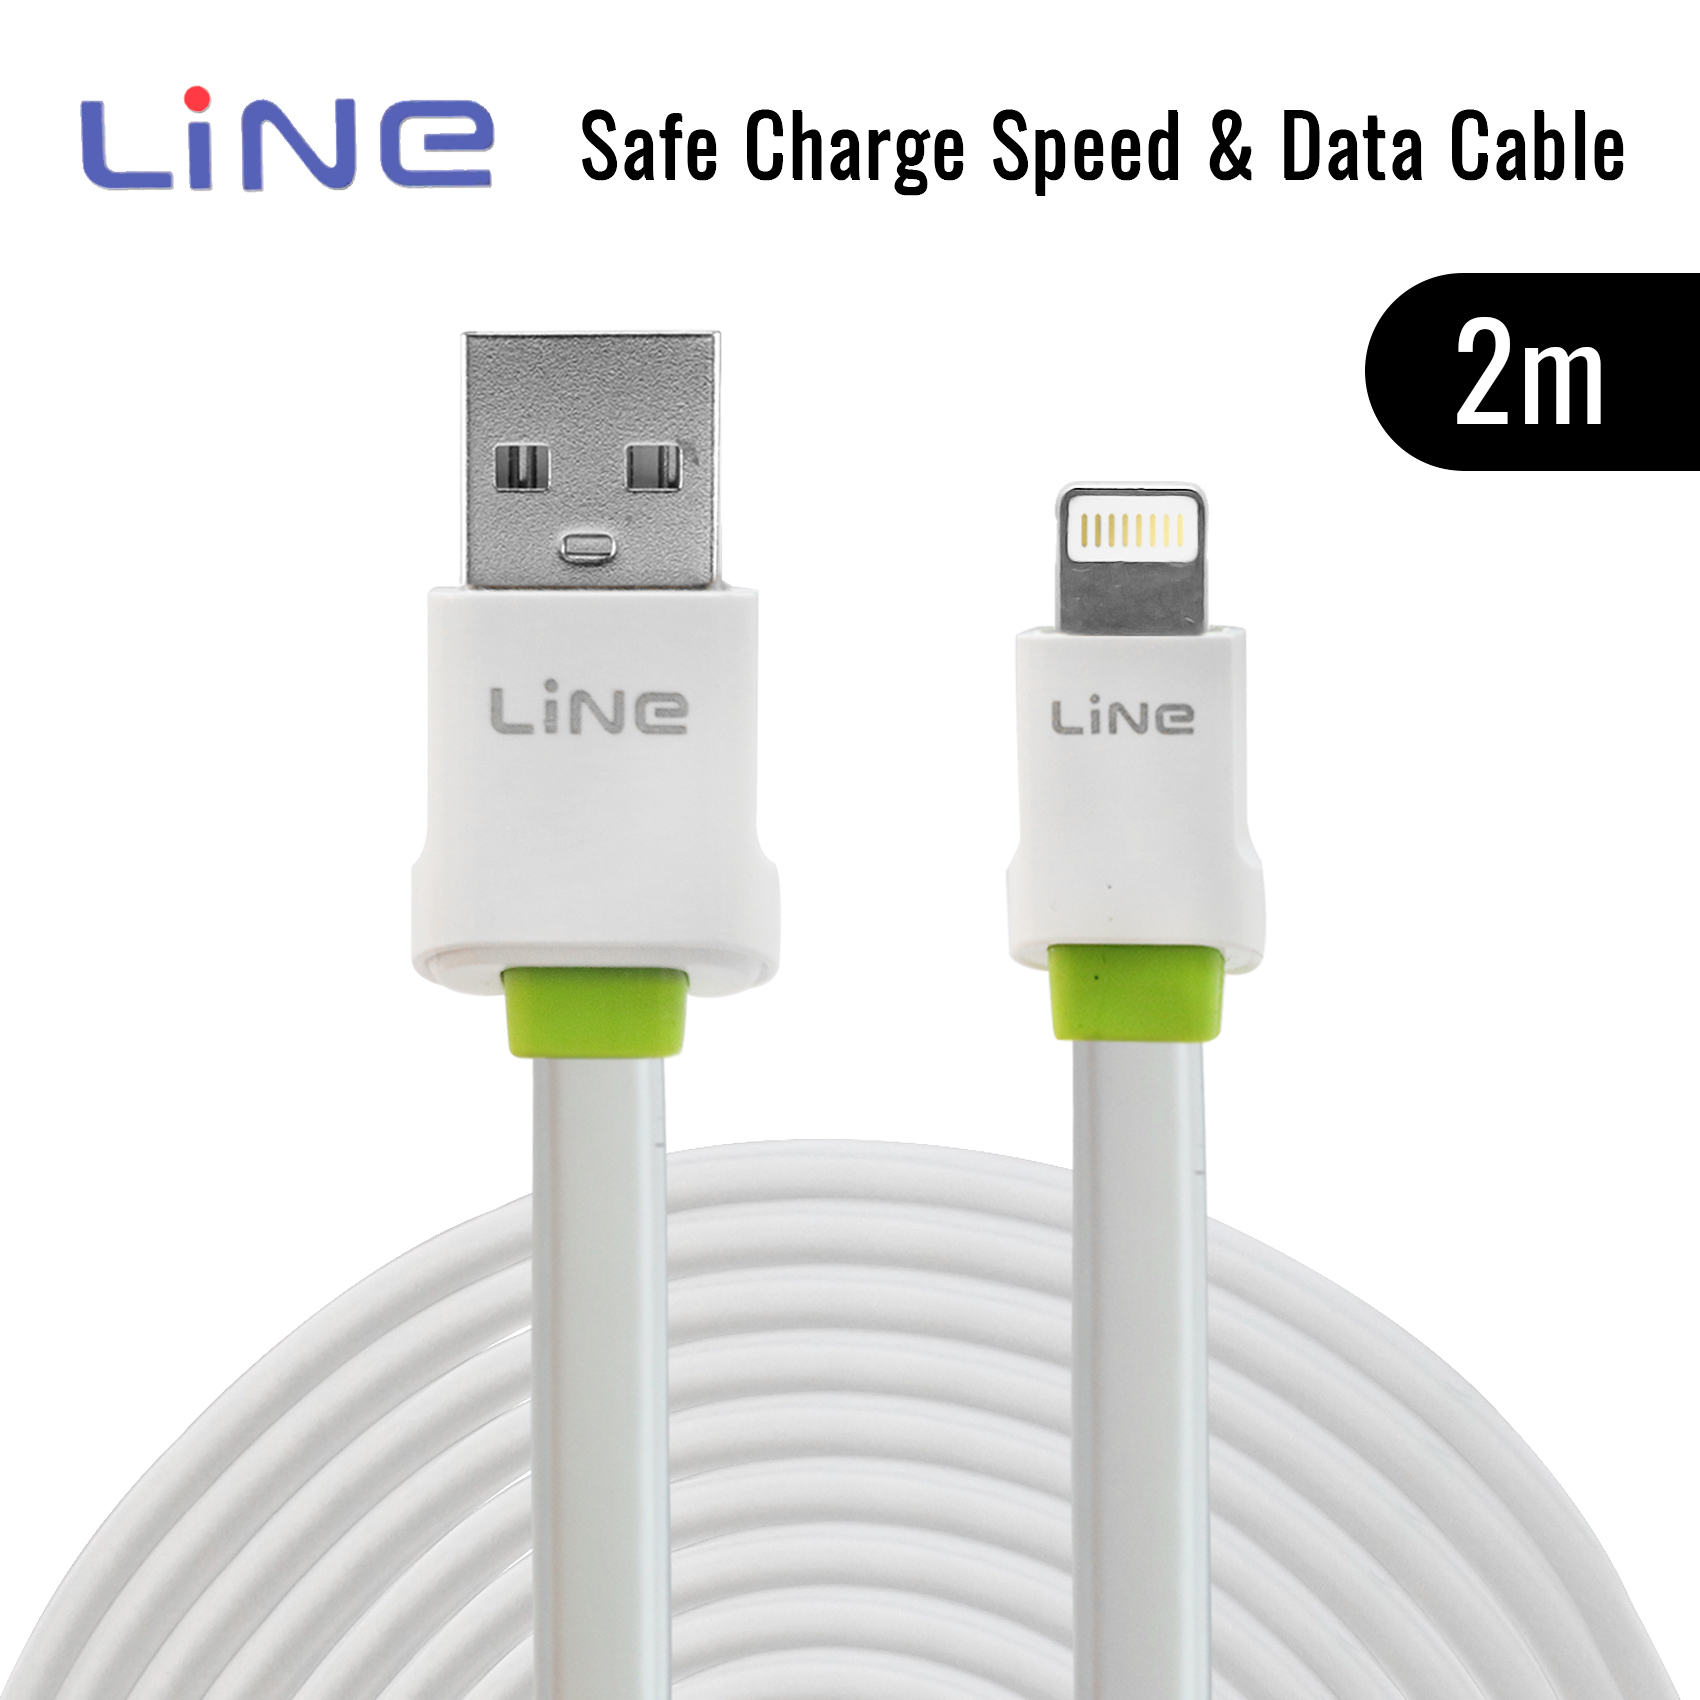 2 Meters Lightning Safe Charge Speed and Data Cable - Green